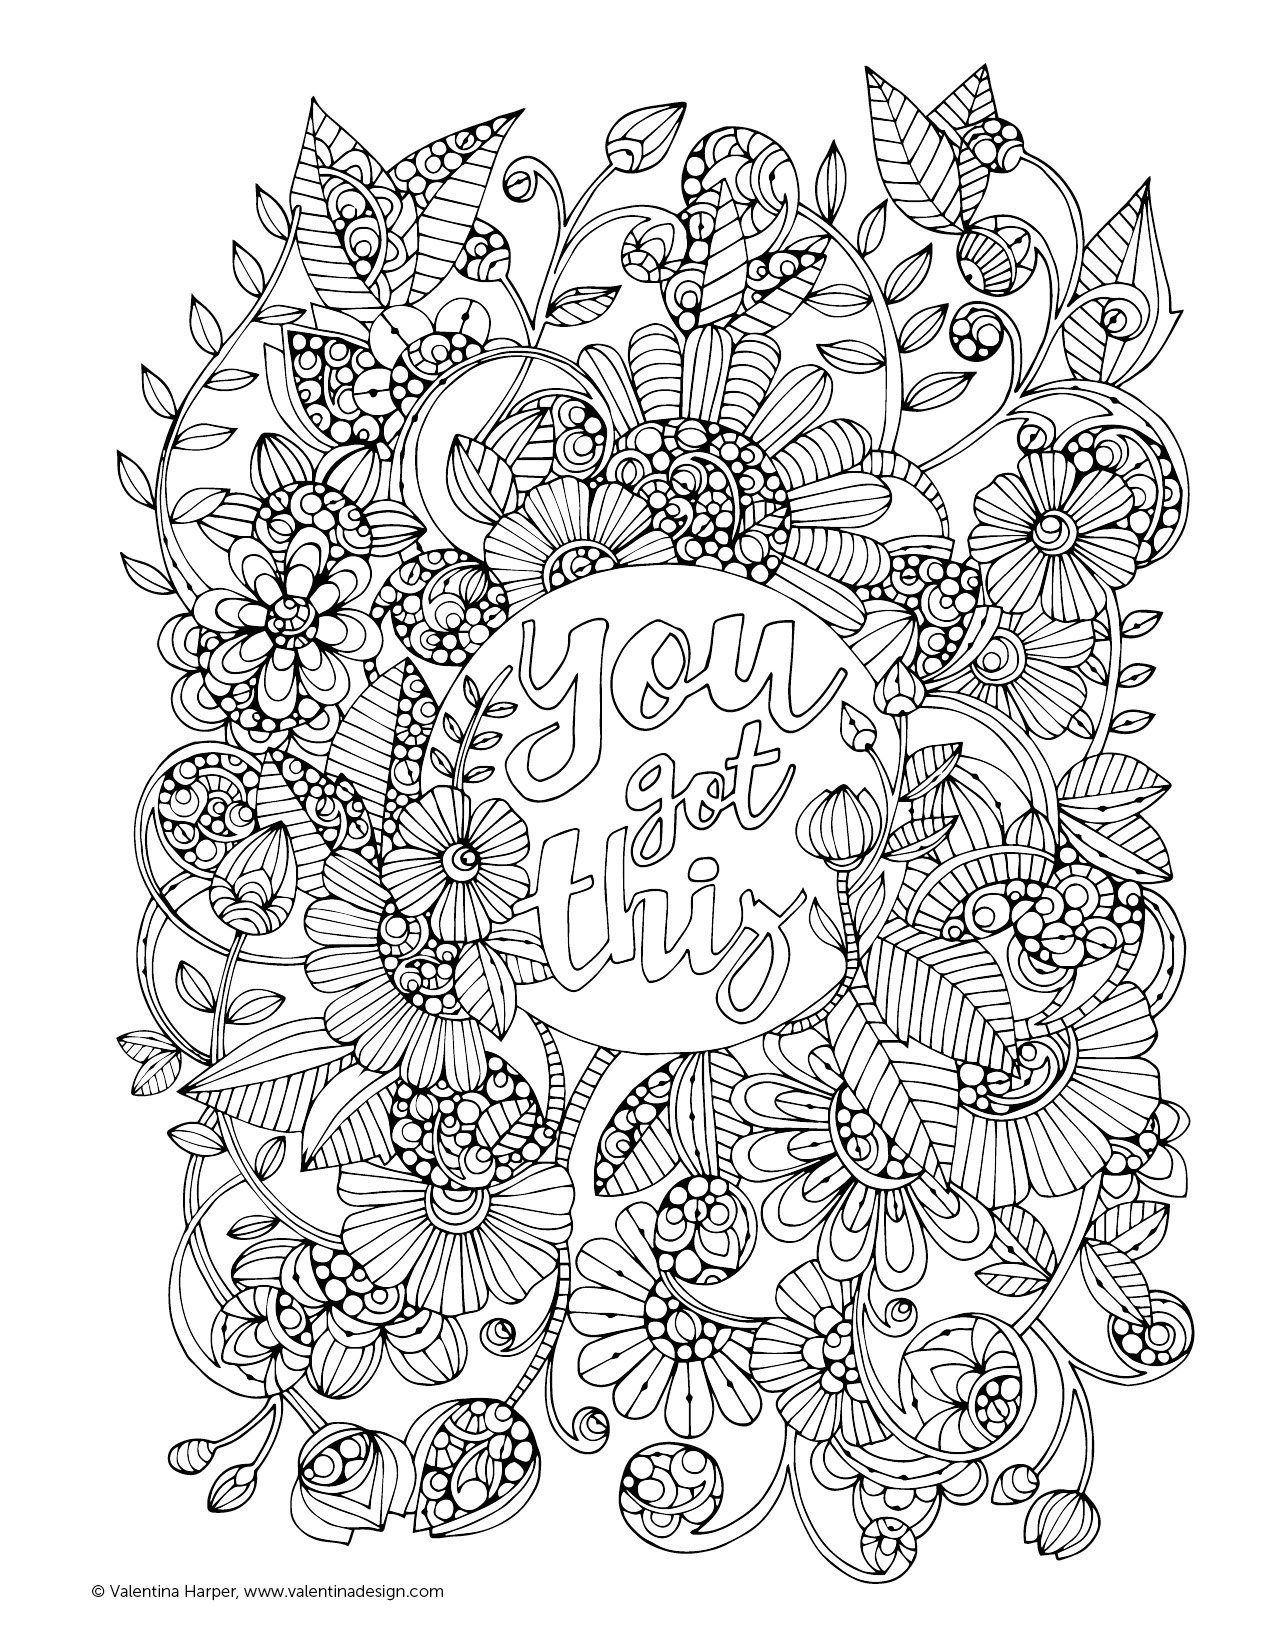 CC_A_Second_cup_bw1_1024x1024@2x.jpg (1275×1631) | Coloring Pages ...